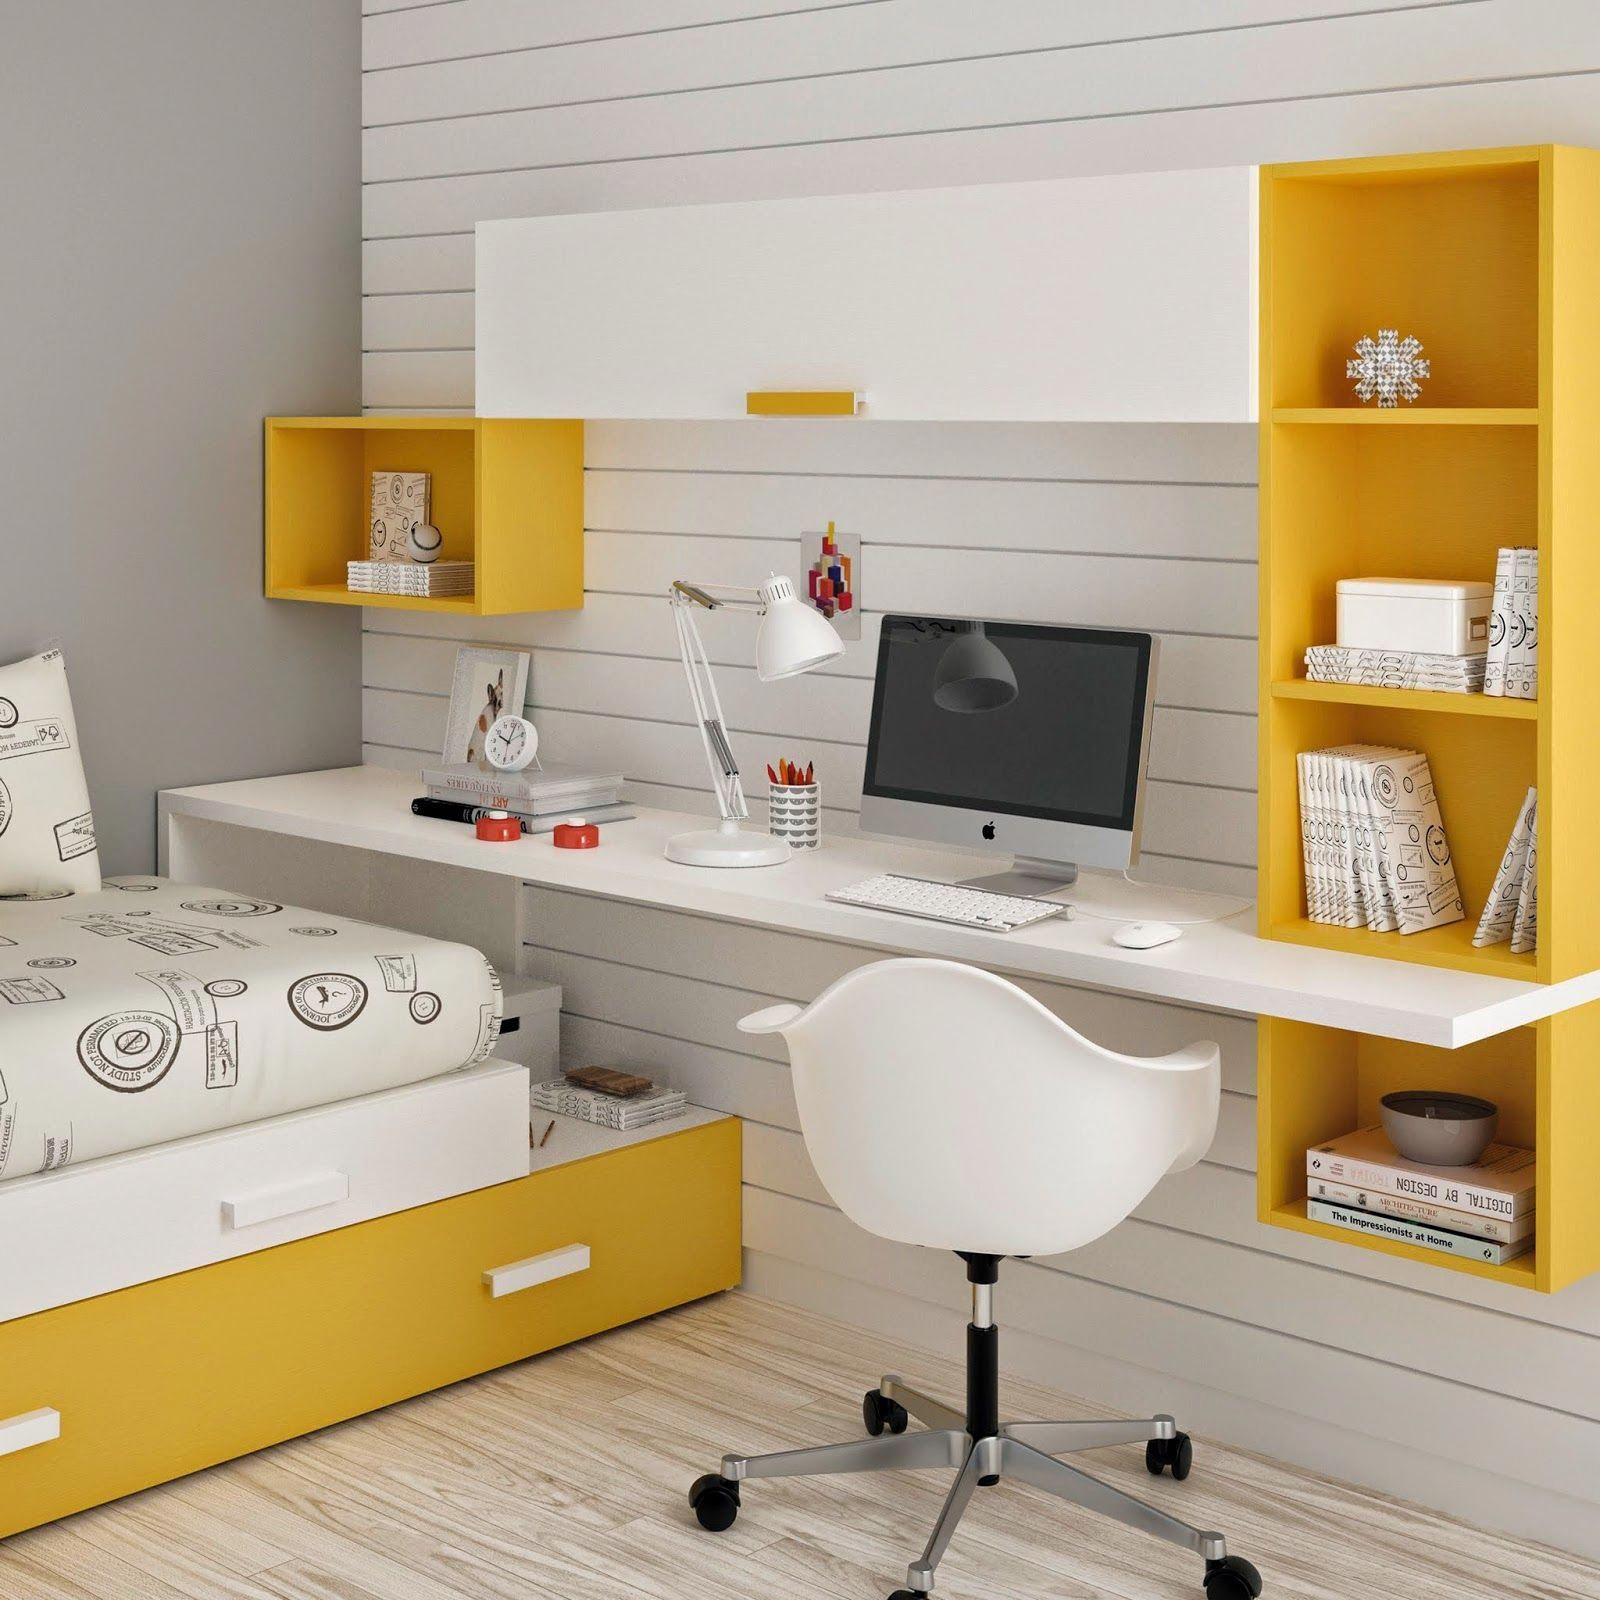 Furniture Buy Now Pay Later #CheapestFurniture  Childrens